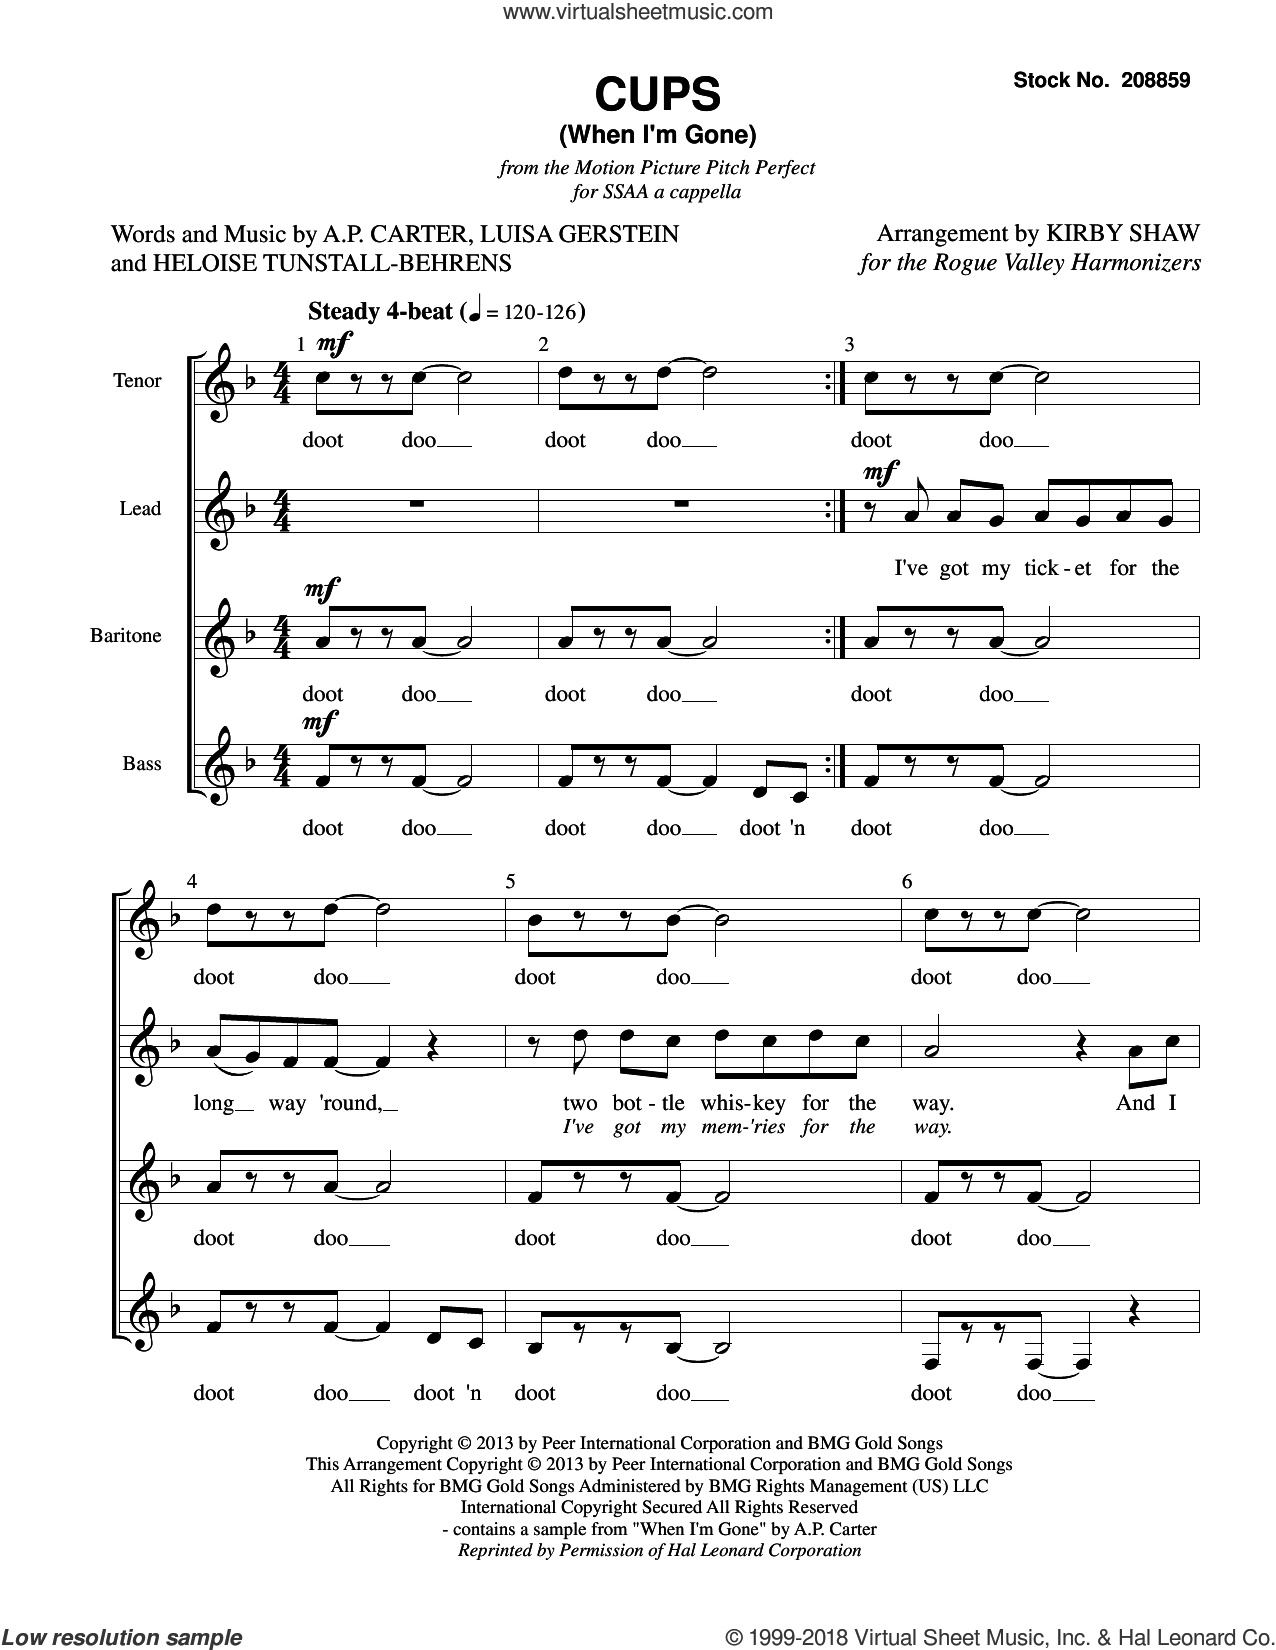 Cups (When I'm Gone) (from Pitch Perfect) (arr. Kirby Shaw) sheet music for choir (SSAA: soprano, alto) by Anna Kendrick, Kirby Shaw, A.P. Carter, Heloise Tunstall-Behrens and Luisa Gerstein, intermediate skill level